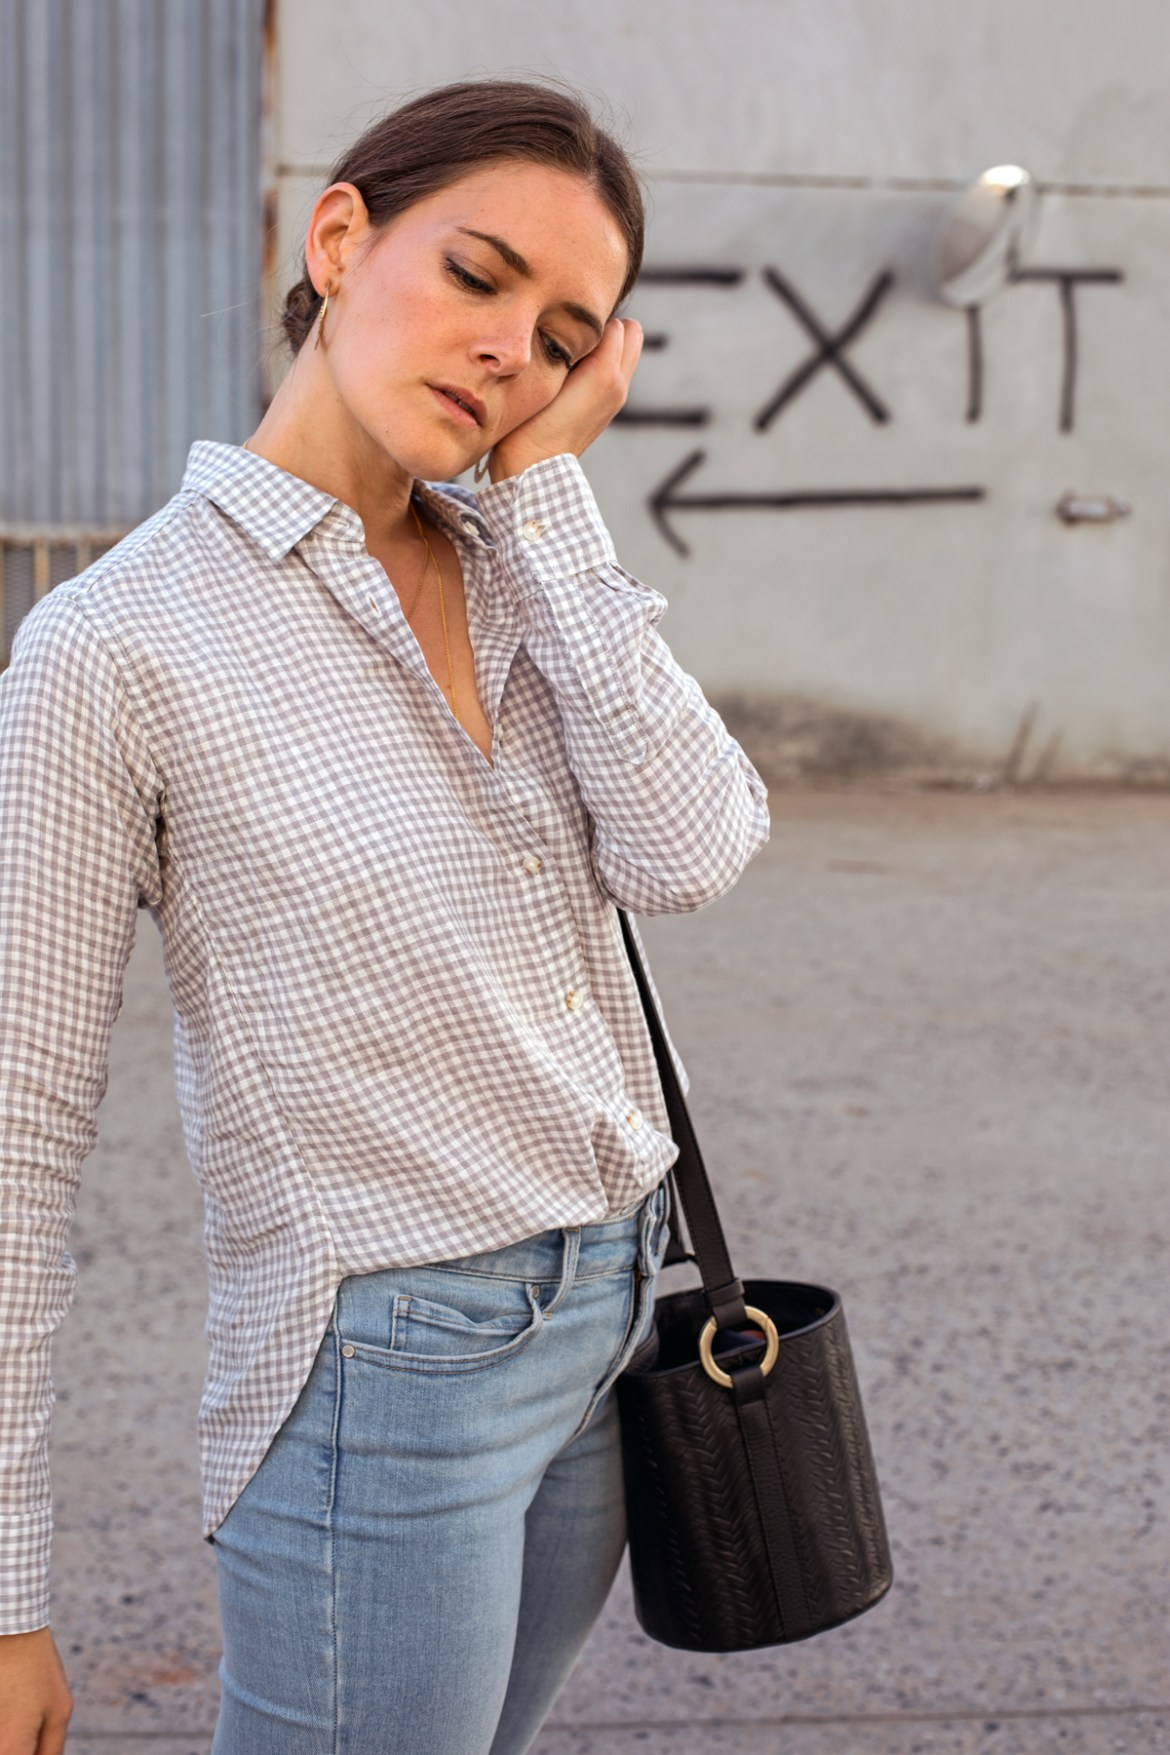 Uniqlo Perth is finally open! Fashion blogger Jenelle Witty from Inspiring Wit wearing Uniqlo linen shirt and denim blue jeans